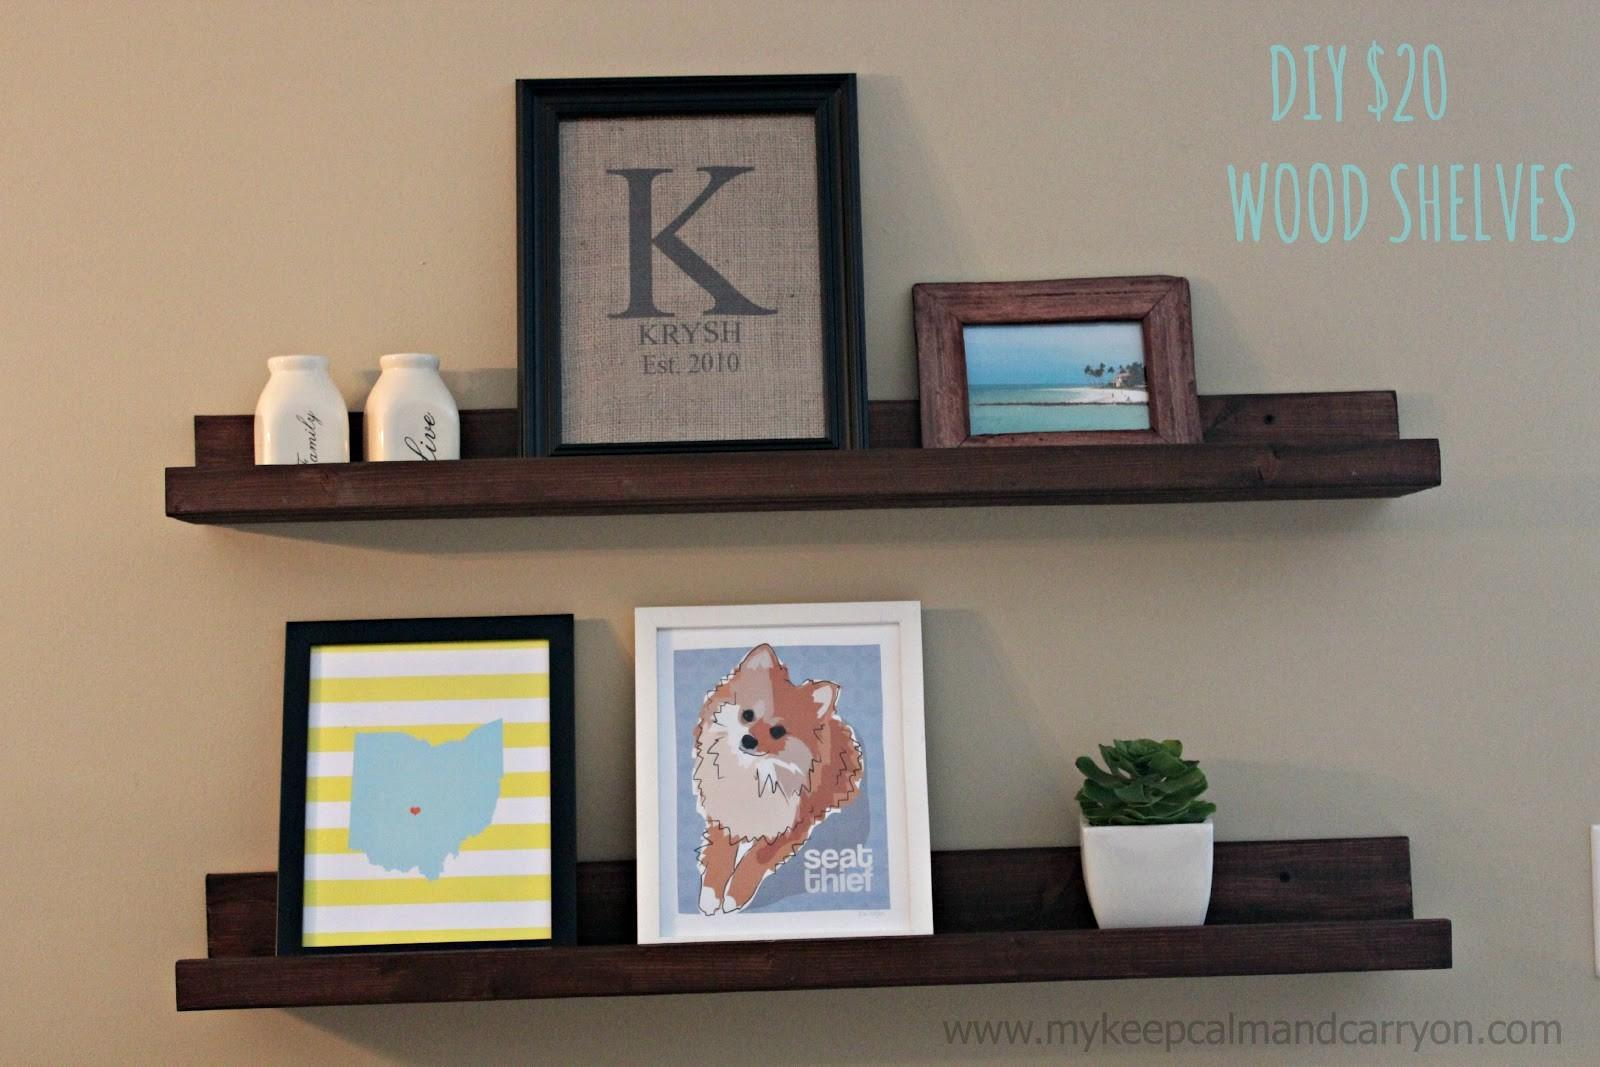 Keep Calm Carry Spd Wood Shelves Tutorial